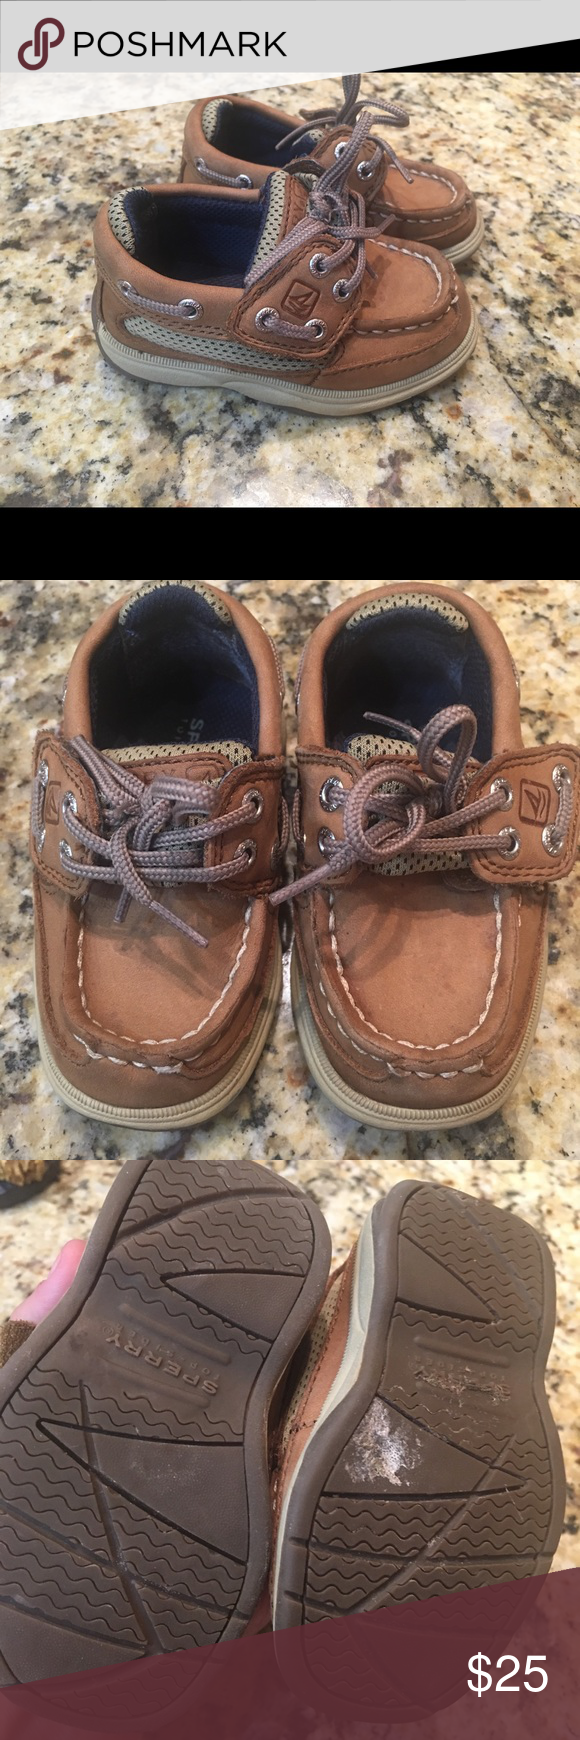 Sperry Baby Size 5 Top Siders   Sperrys